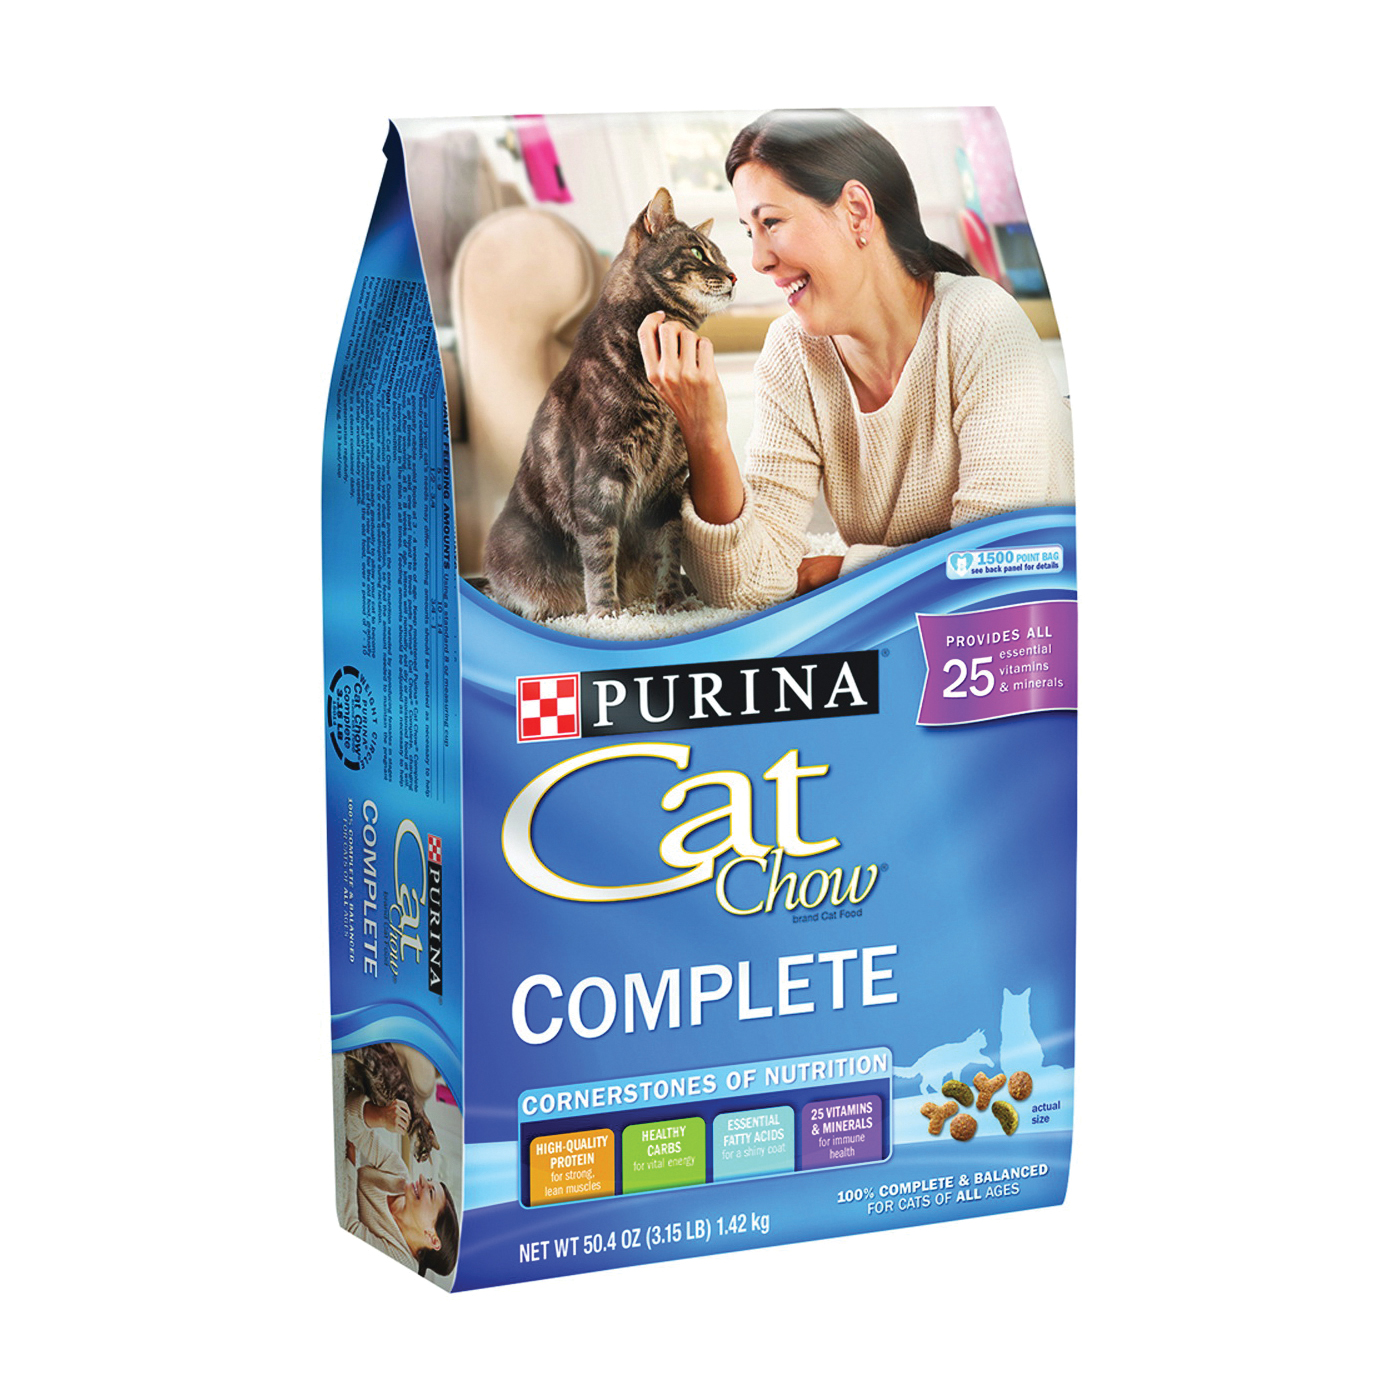 Picture of Purina 1780015014 Dry Cat Food, 3.15 lb Package, Bag